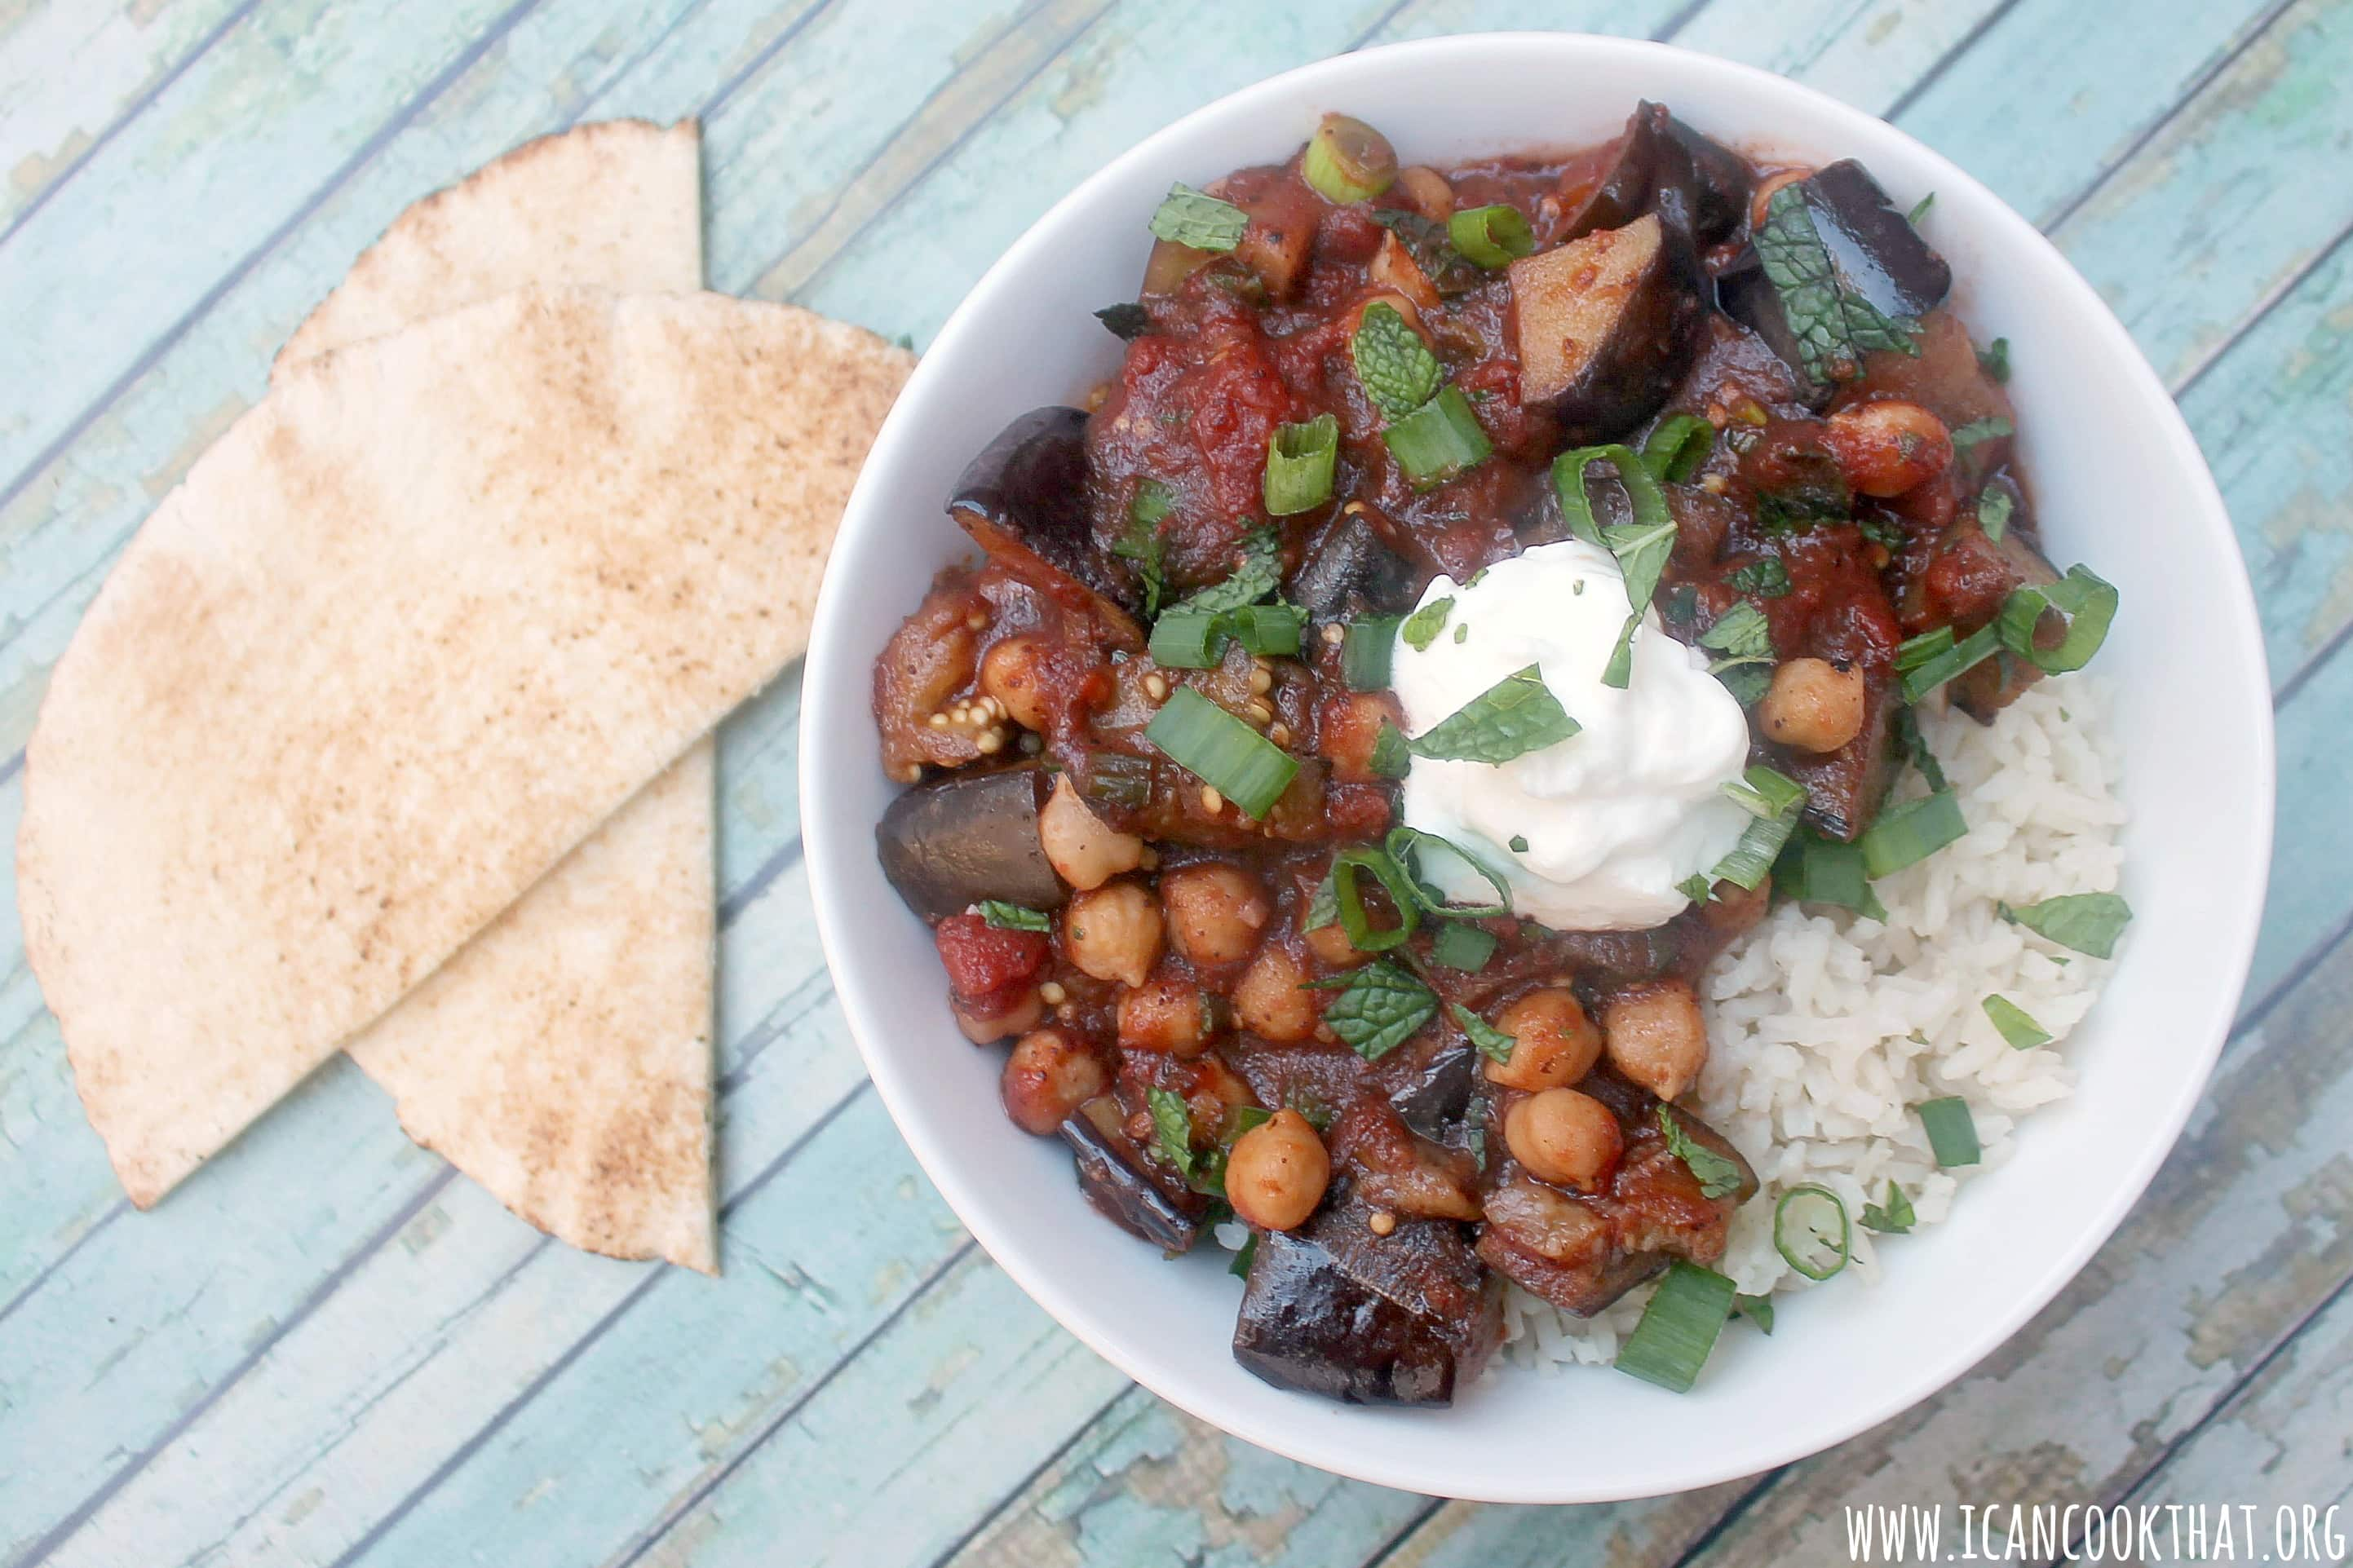 Sumac-Scented Eggplant and Chickpeas